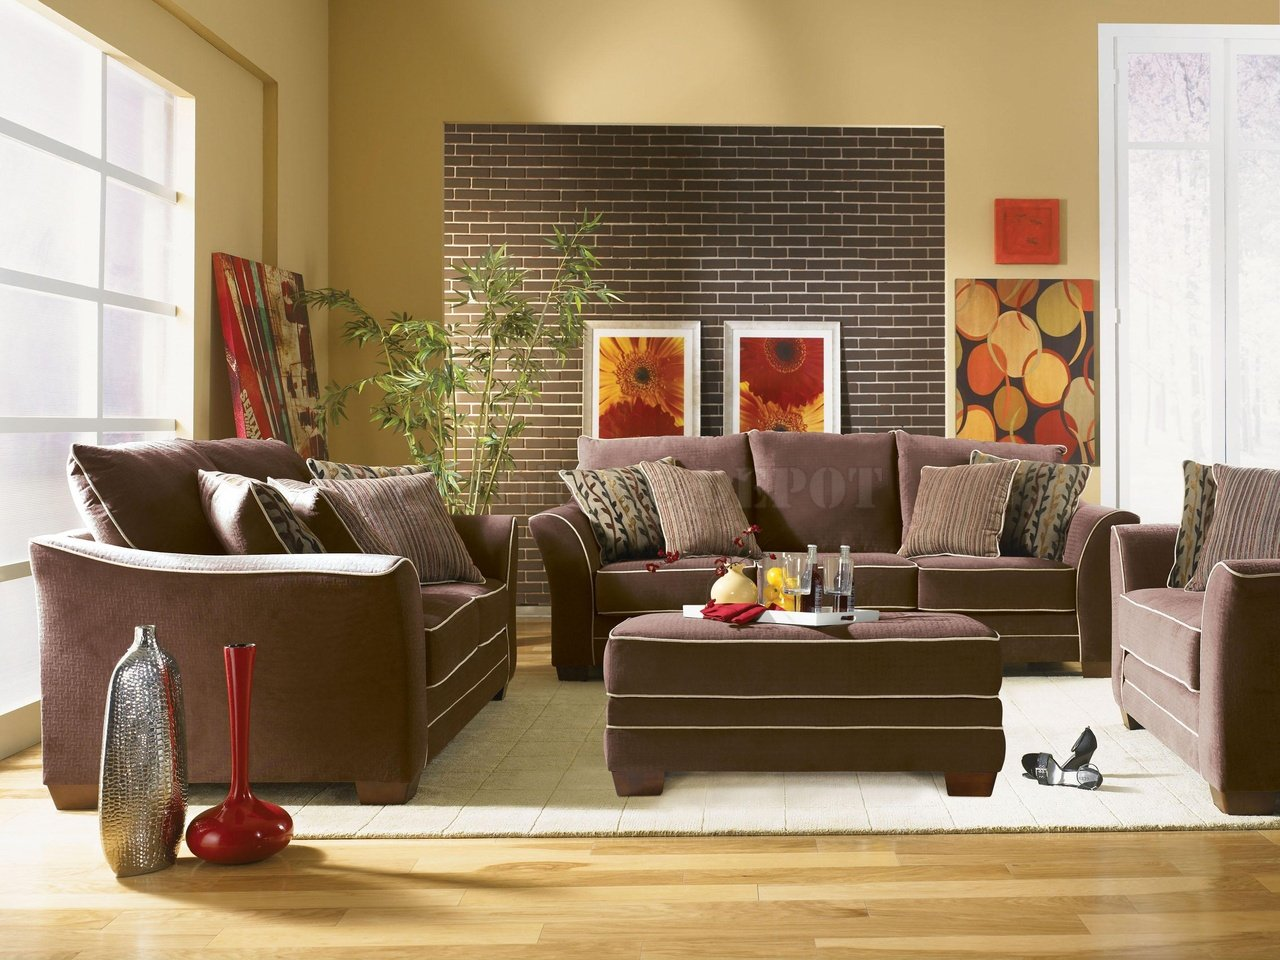 Interior design ideas interior designs home design ideas living room furniture sofas design Living room loveseats